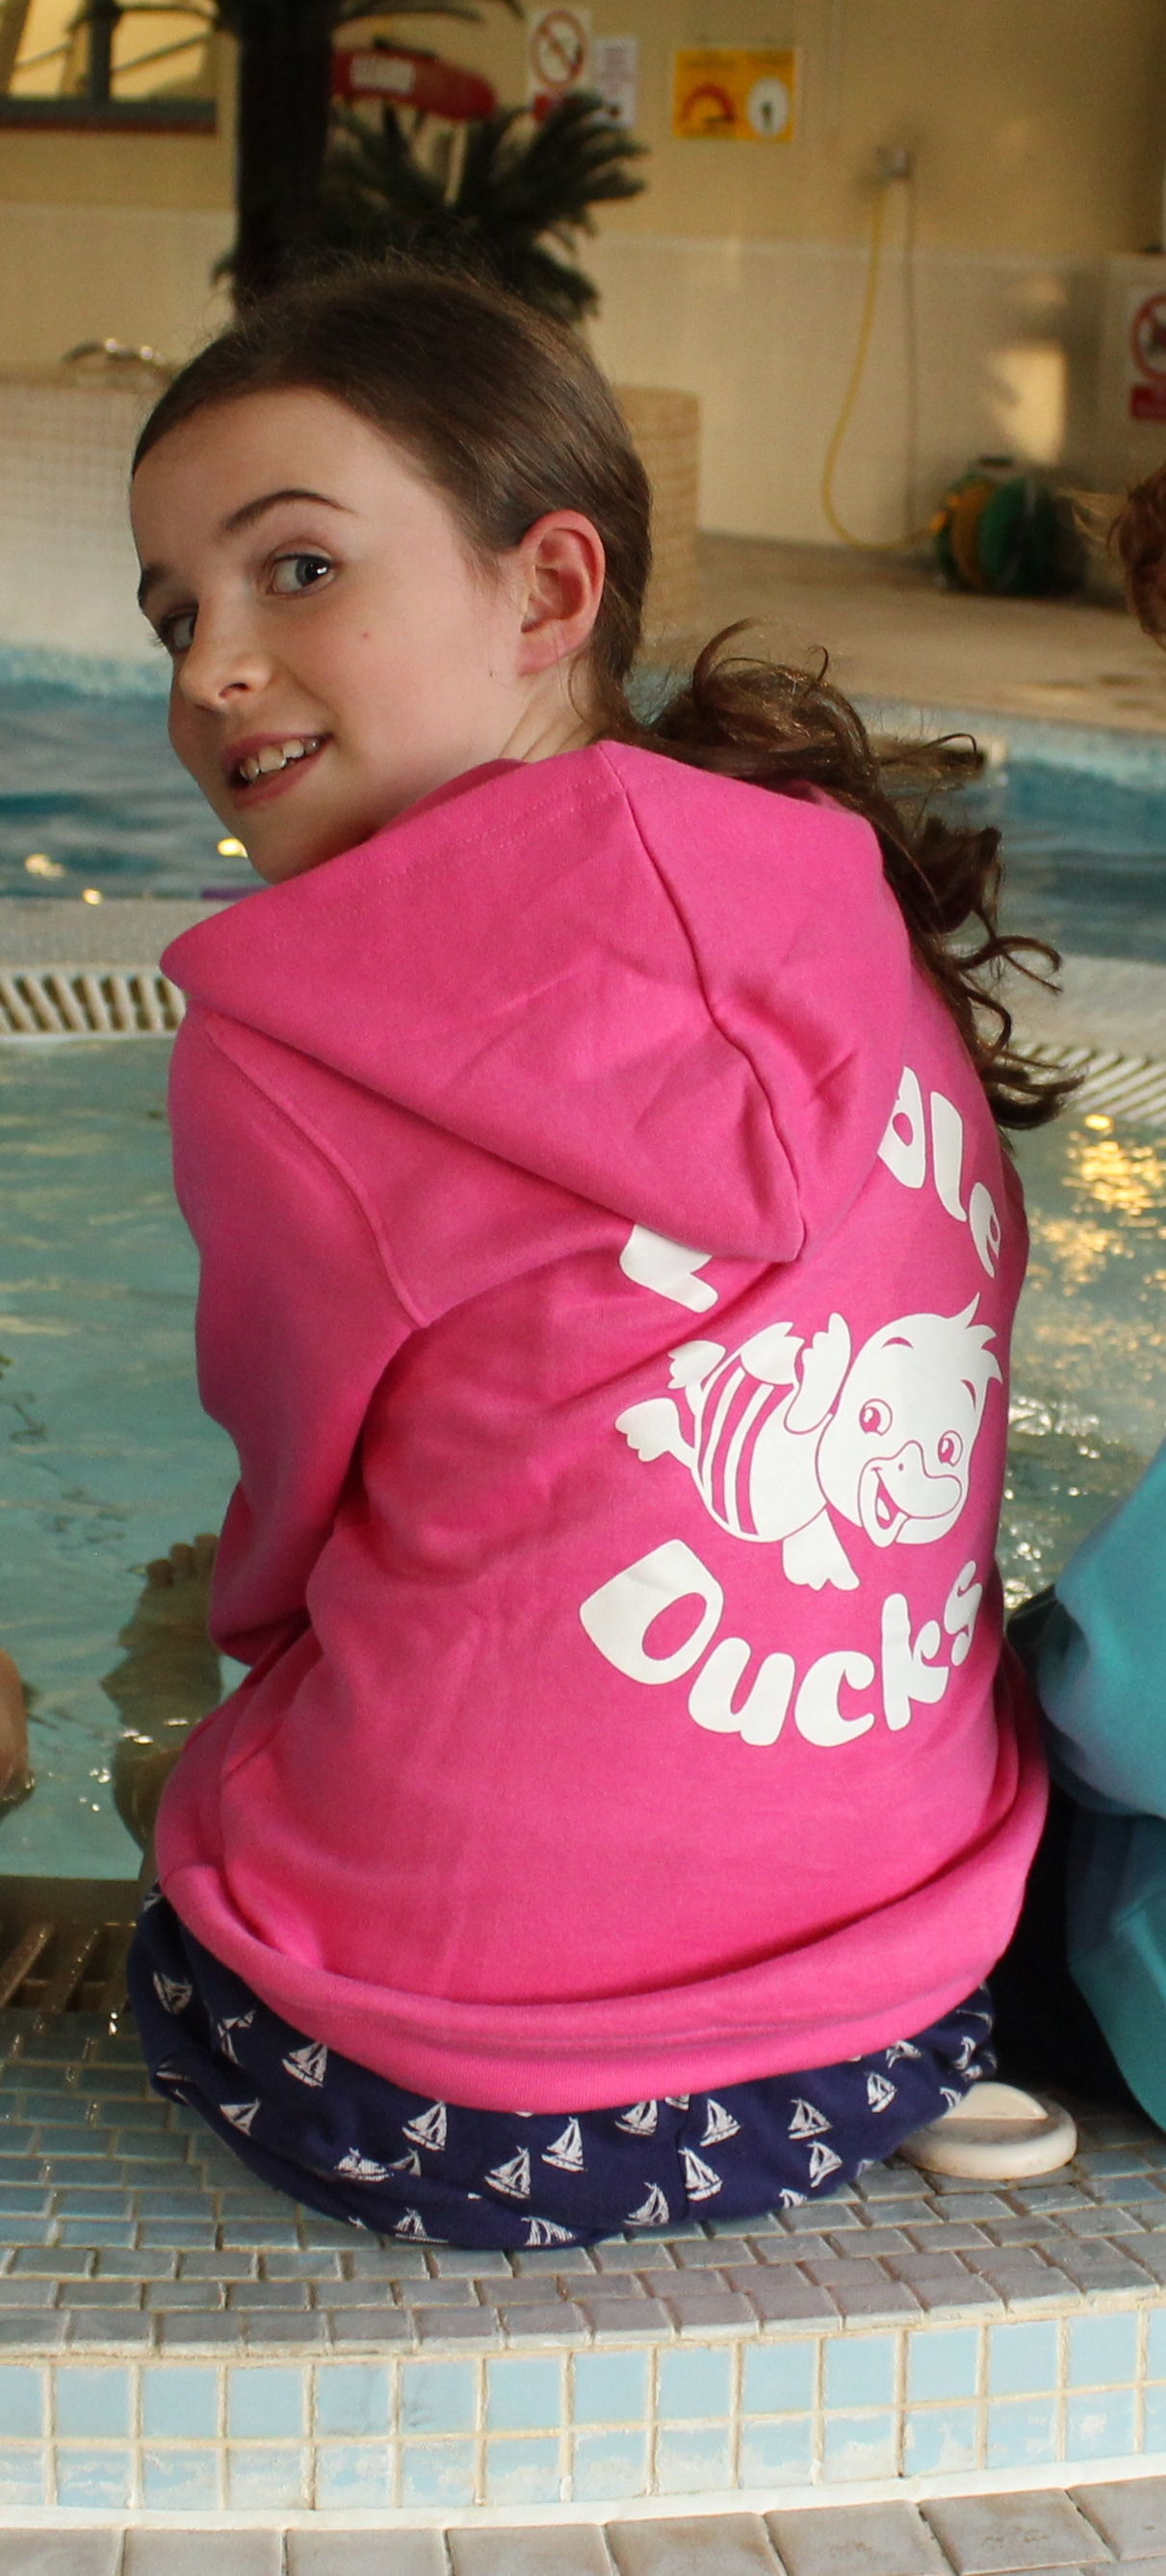 Puddle Ducks Kid's Hoodie